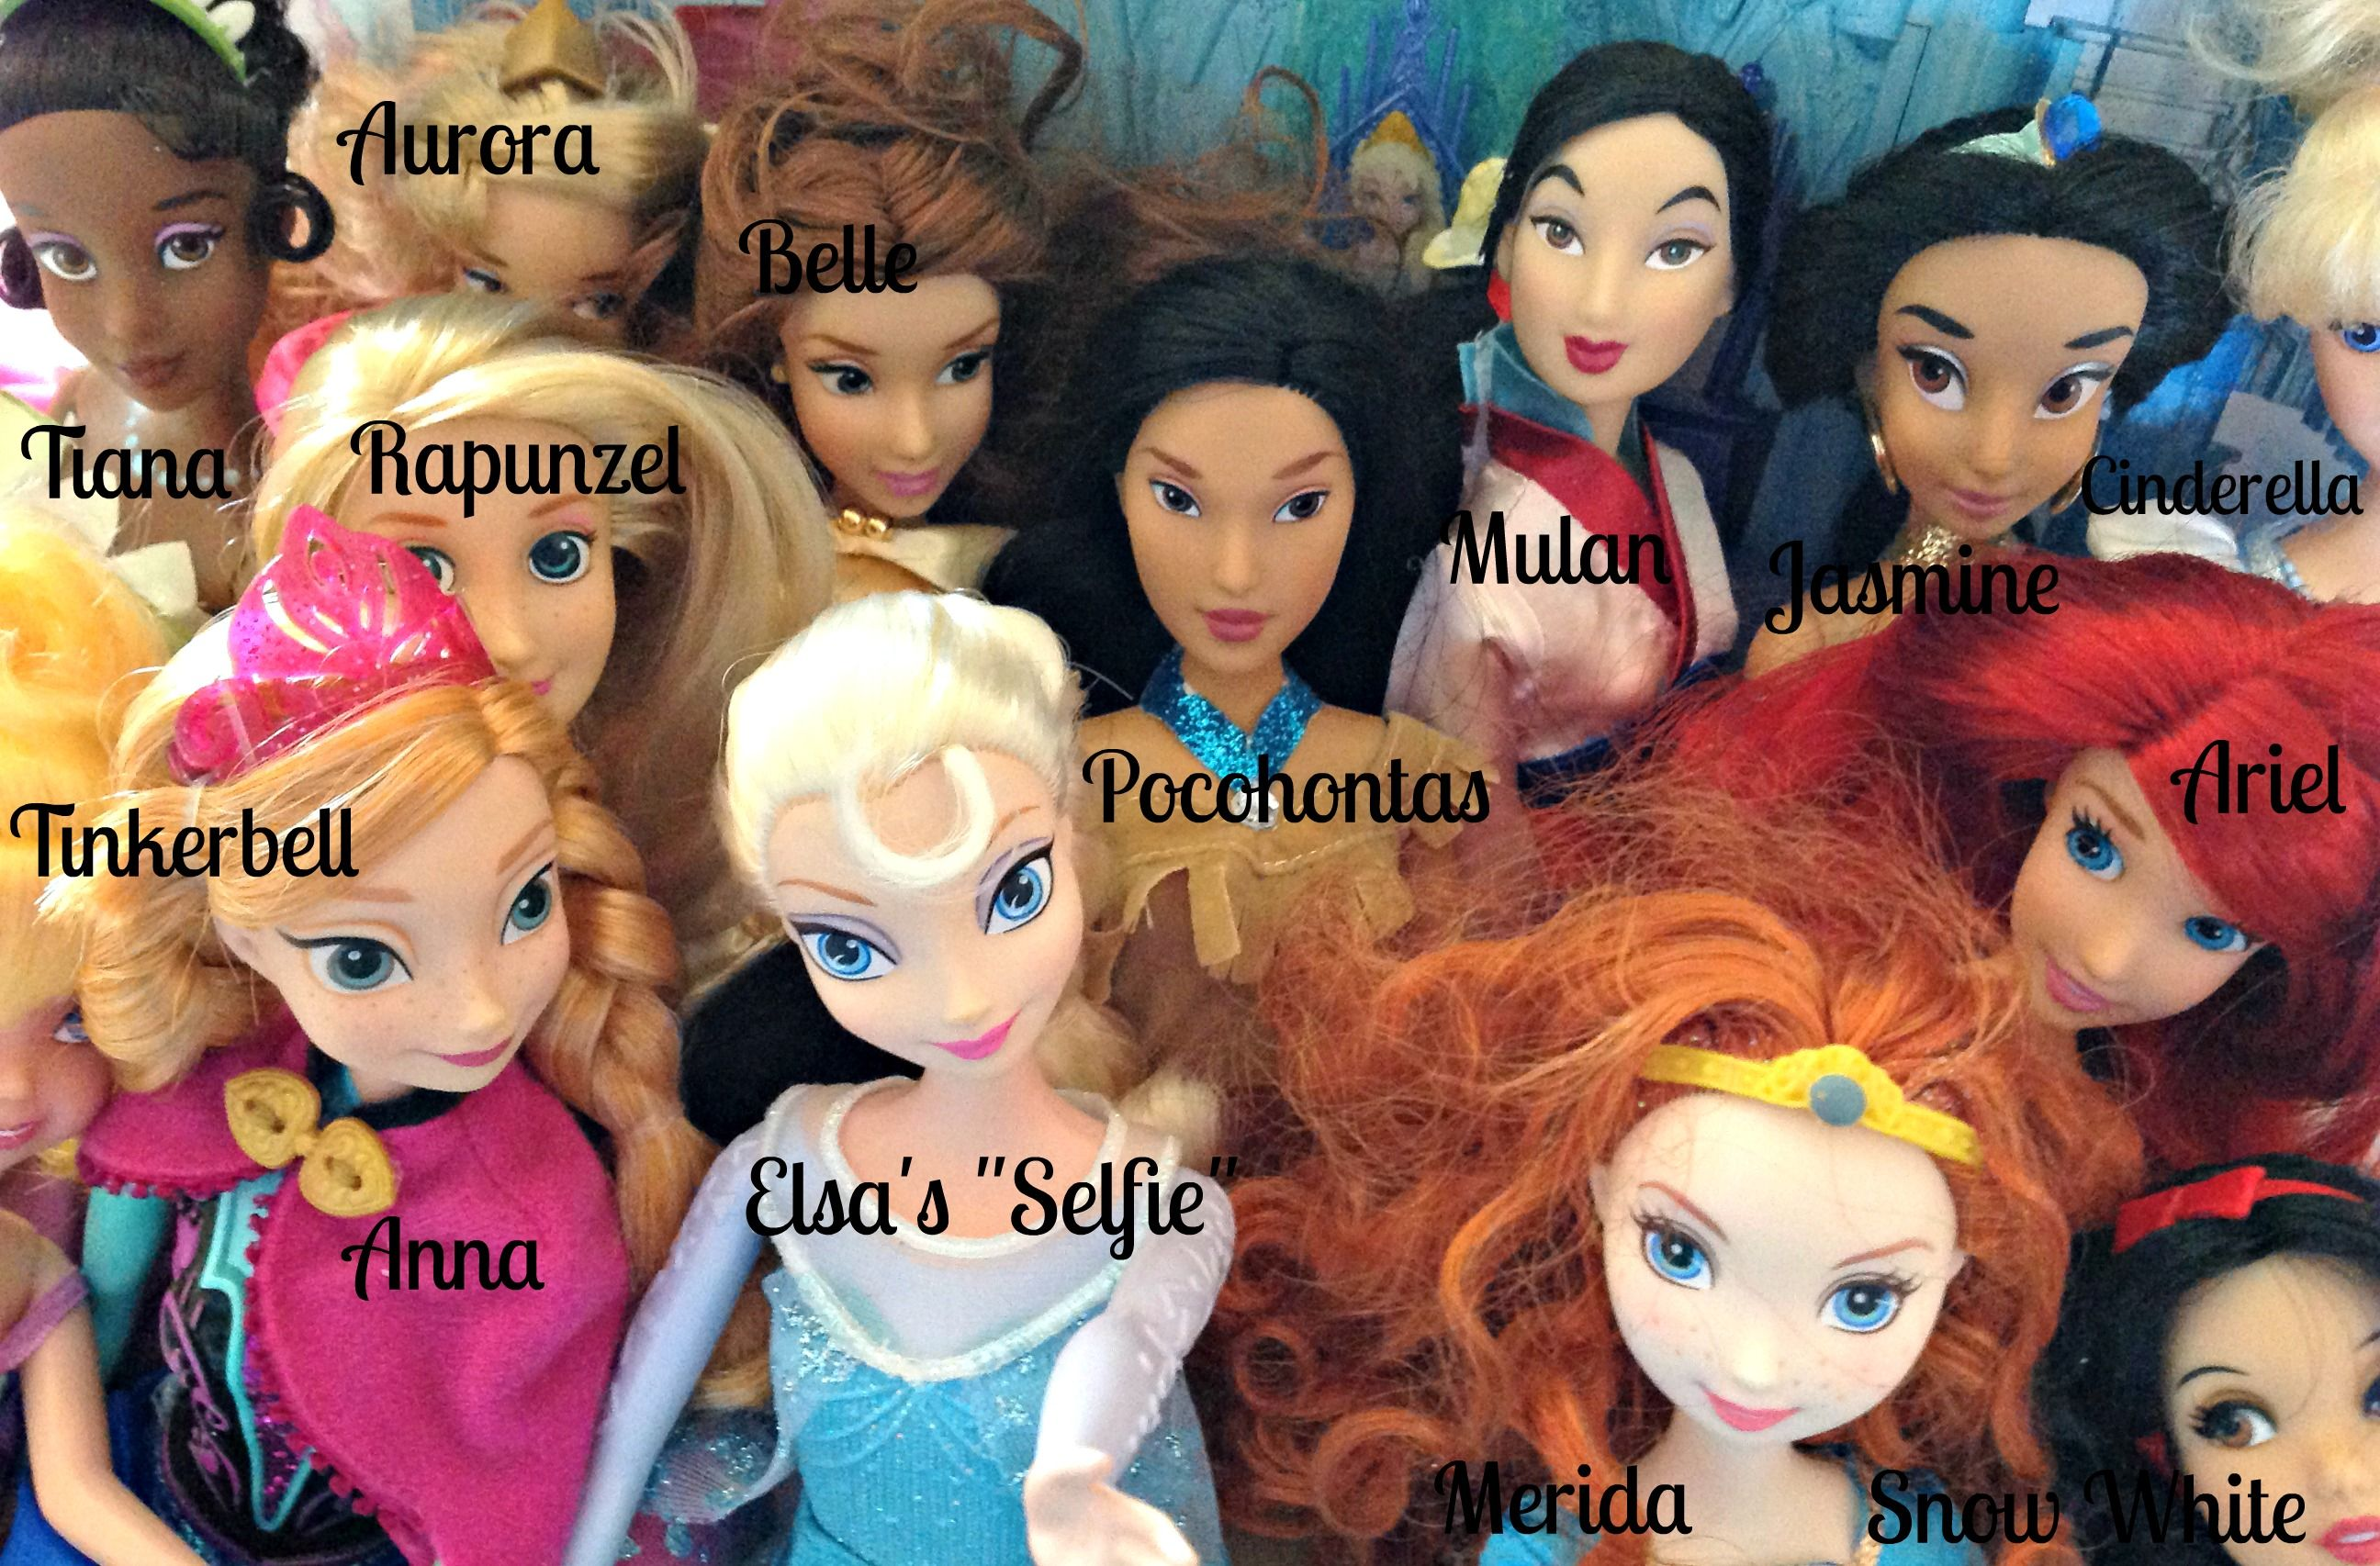 disney characters pictures and names - Google Search